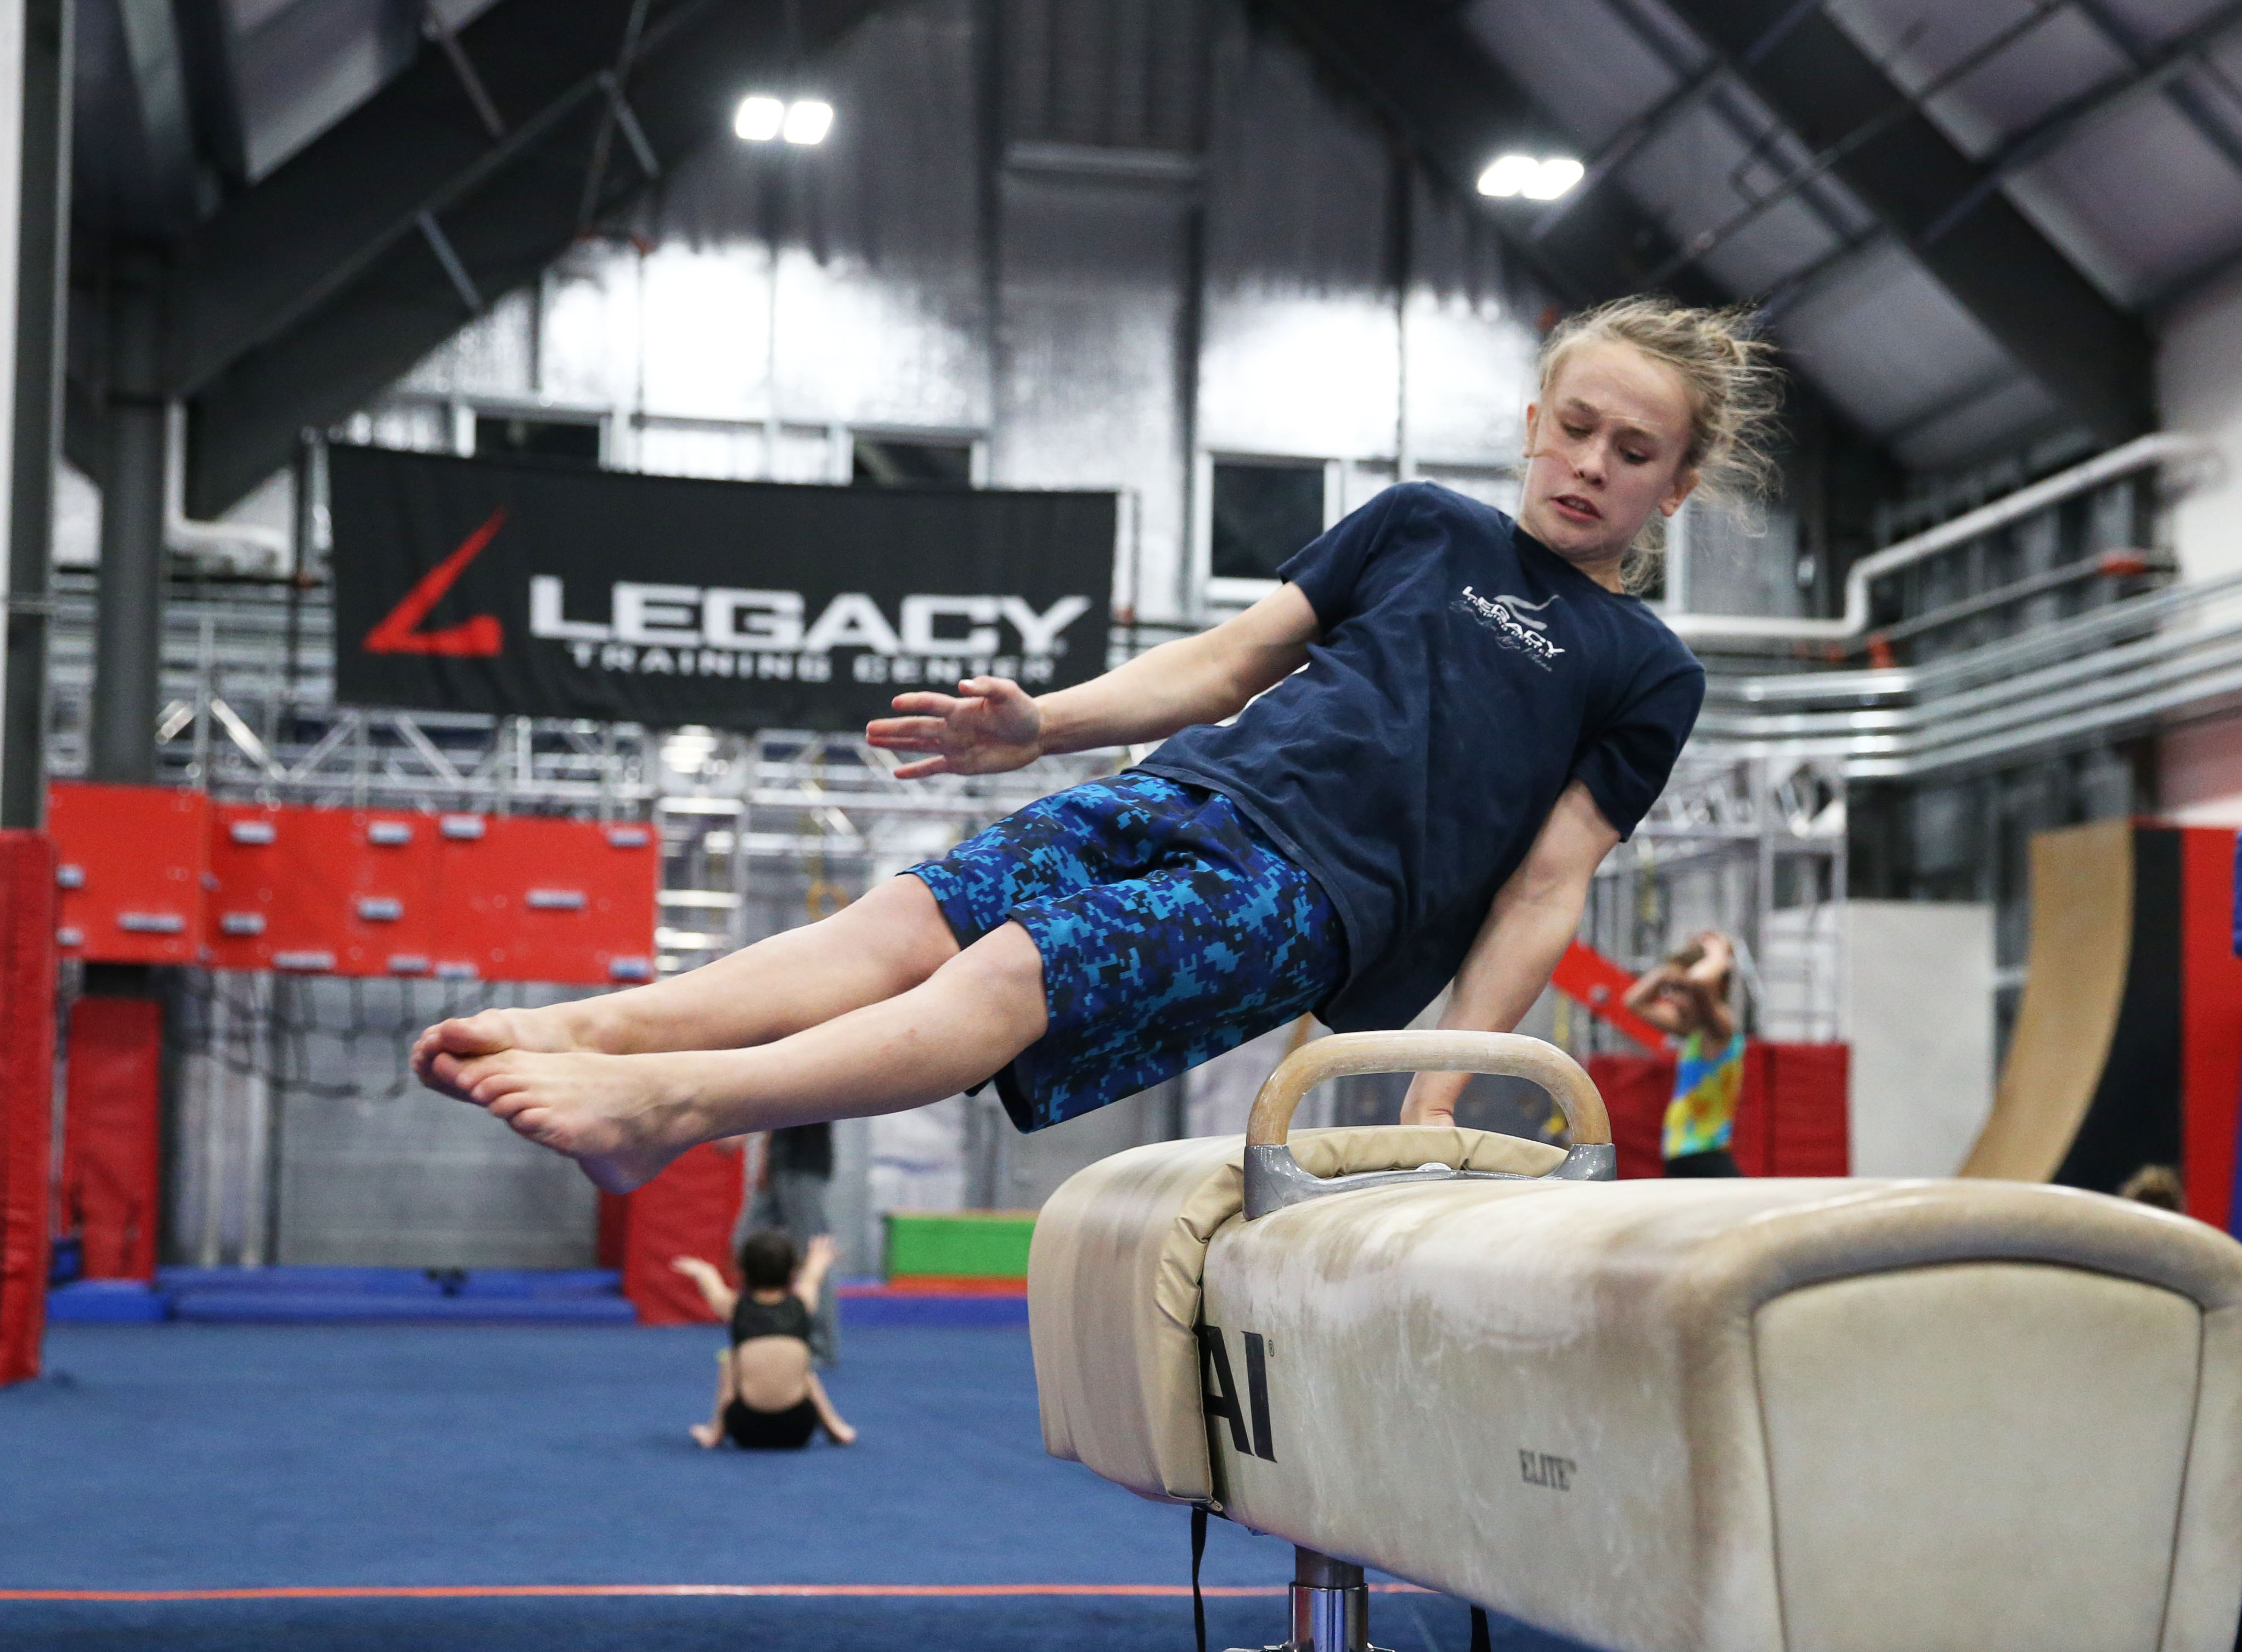 Image: Boys Developmental Gymnastics